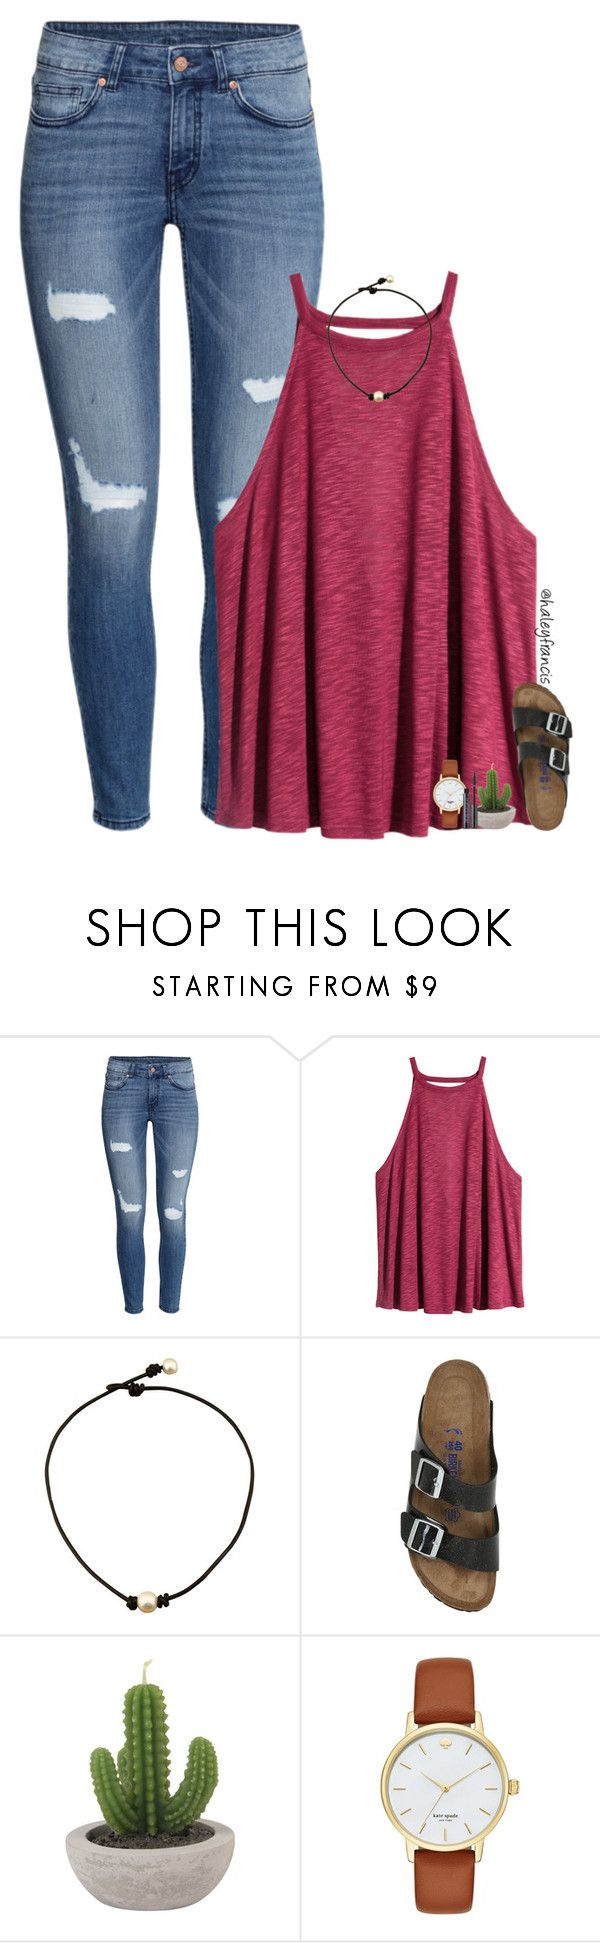 """RTD!! "" by haleyfrancis ❤ liked on Polyvore featuring H&M, Birkenstock, Kate Spade and Urban Decay"